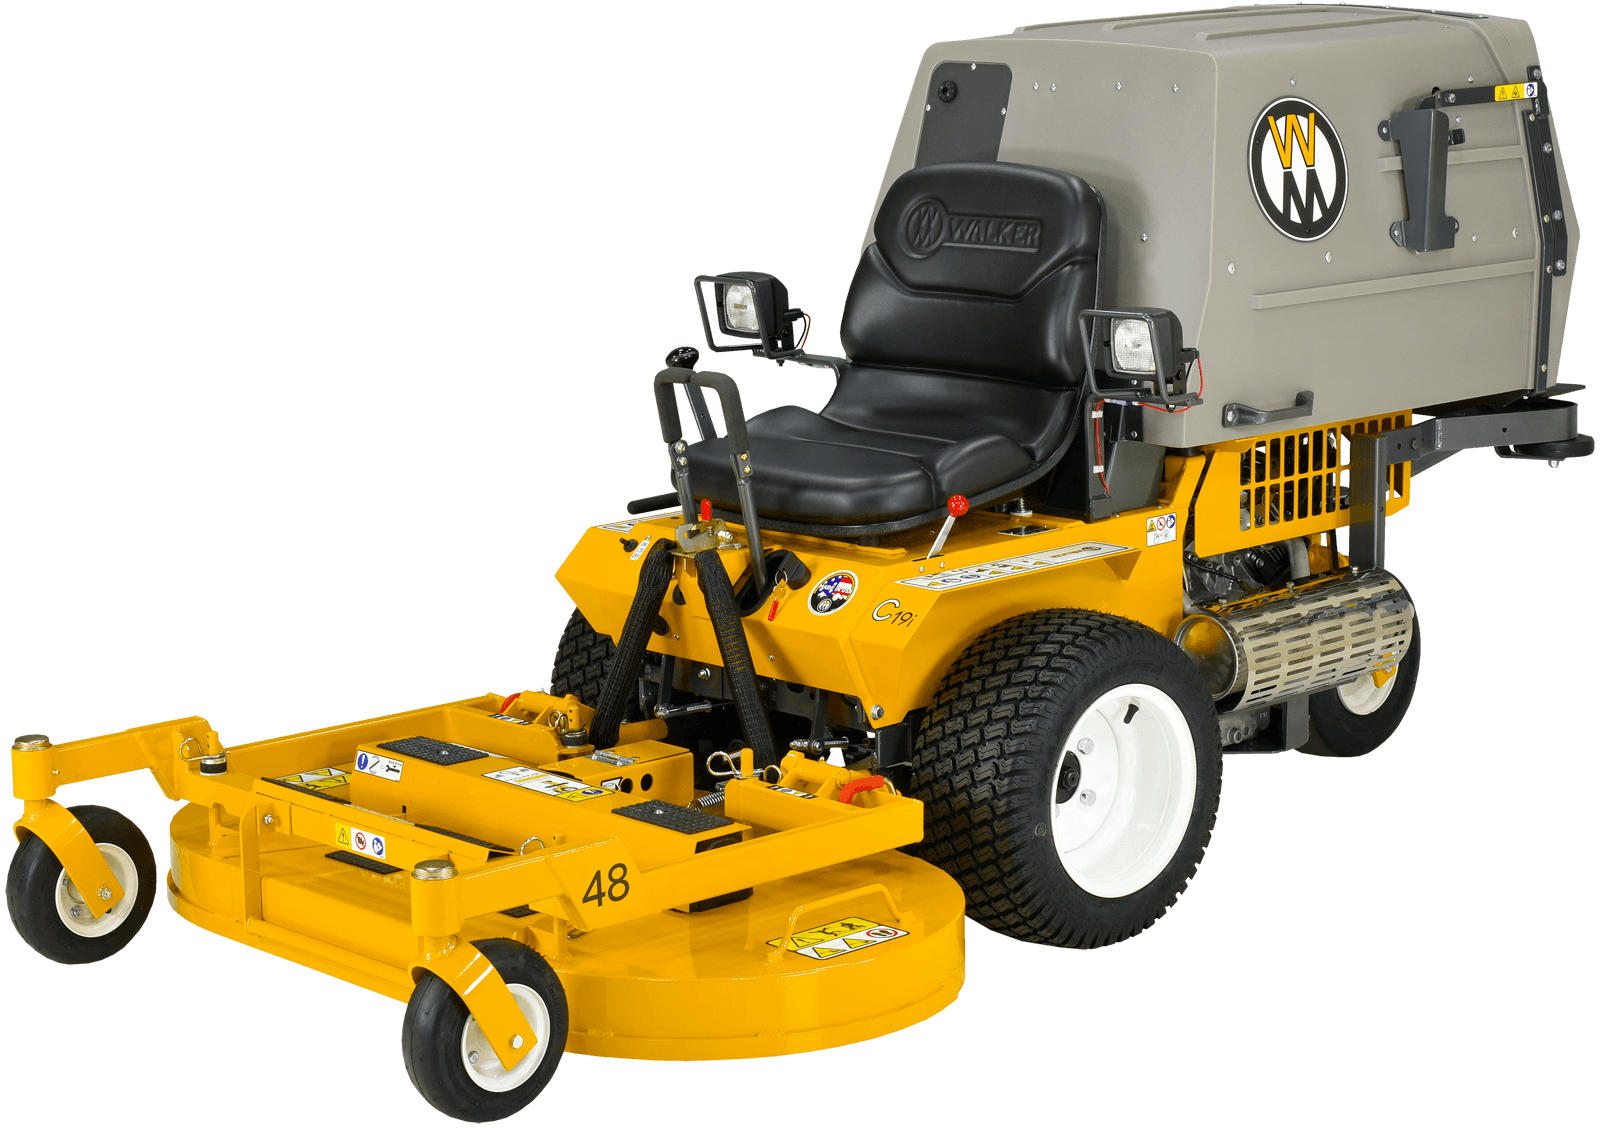 Walker Mowers Wiring Diagram For Mower Riding Download